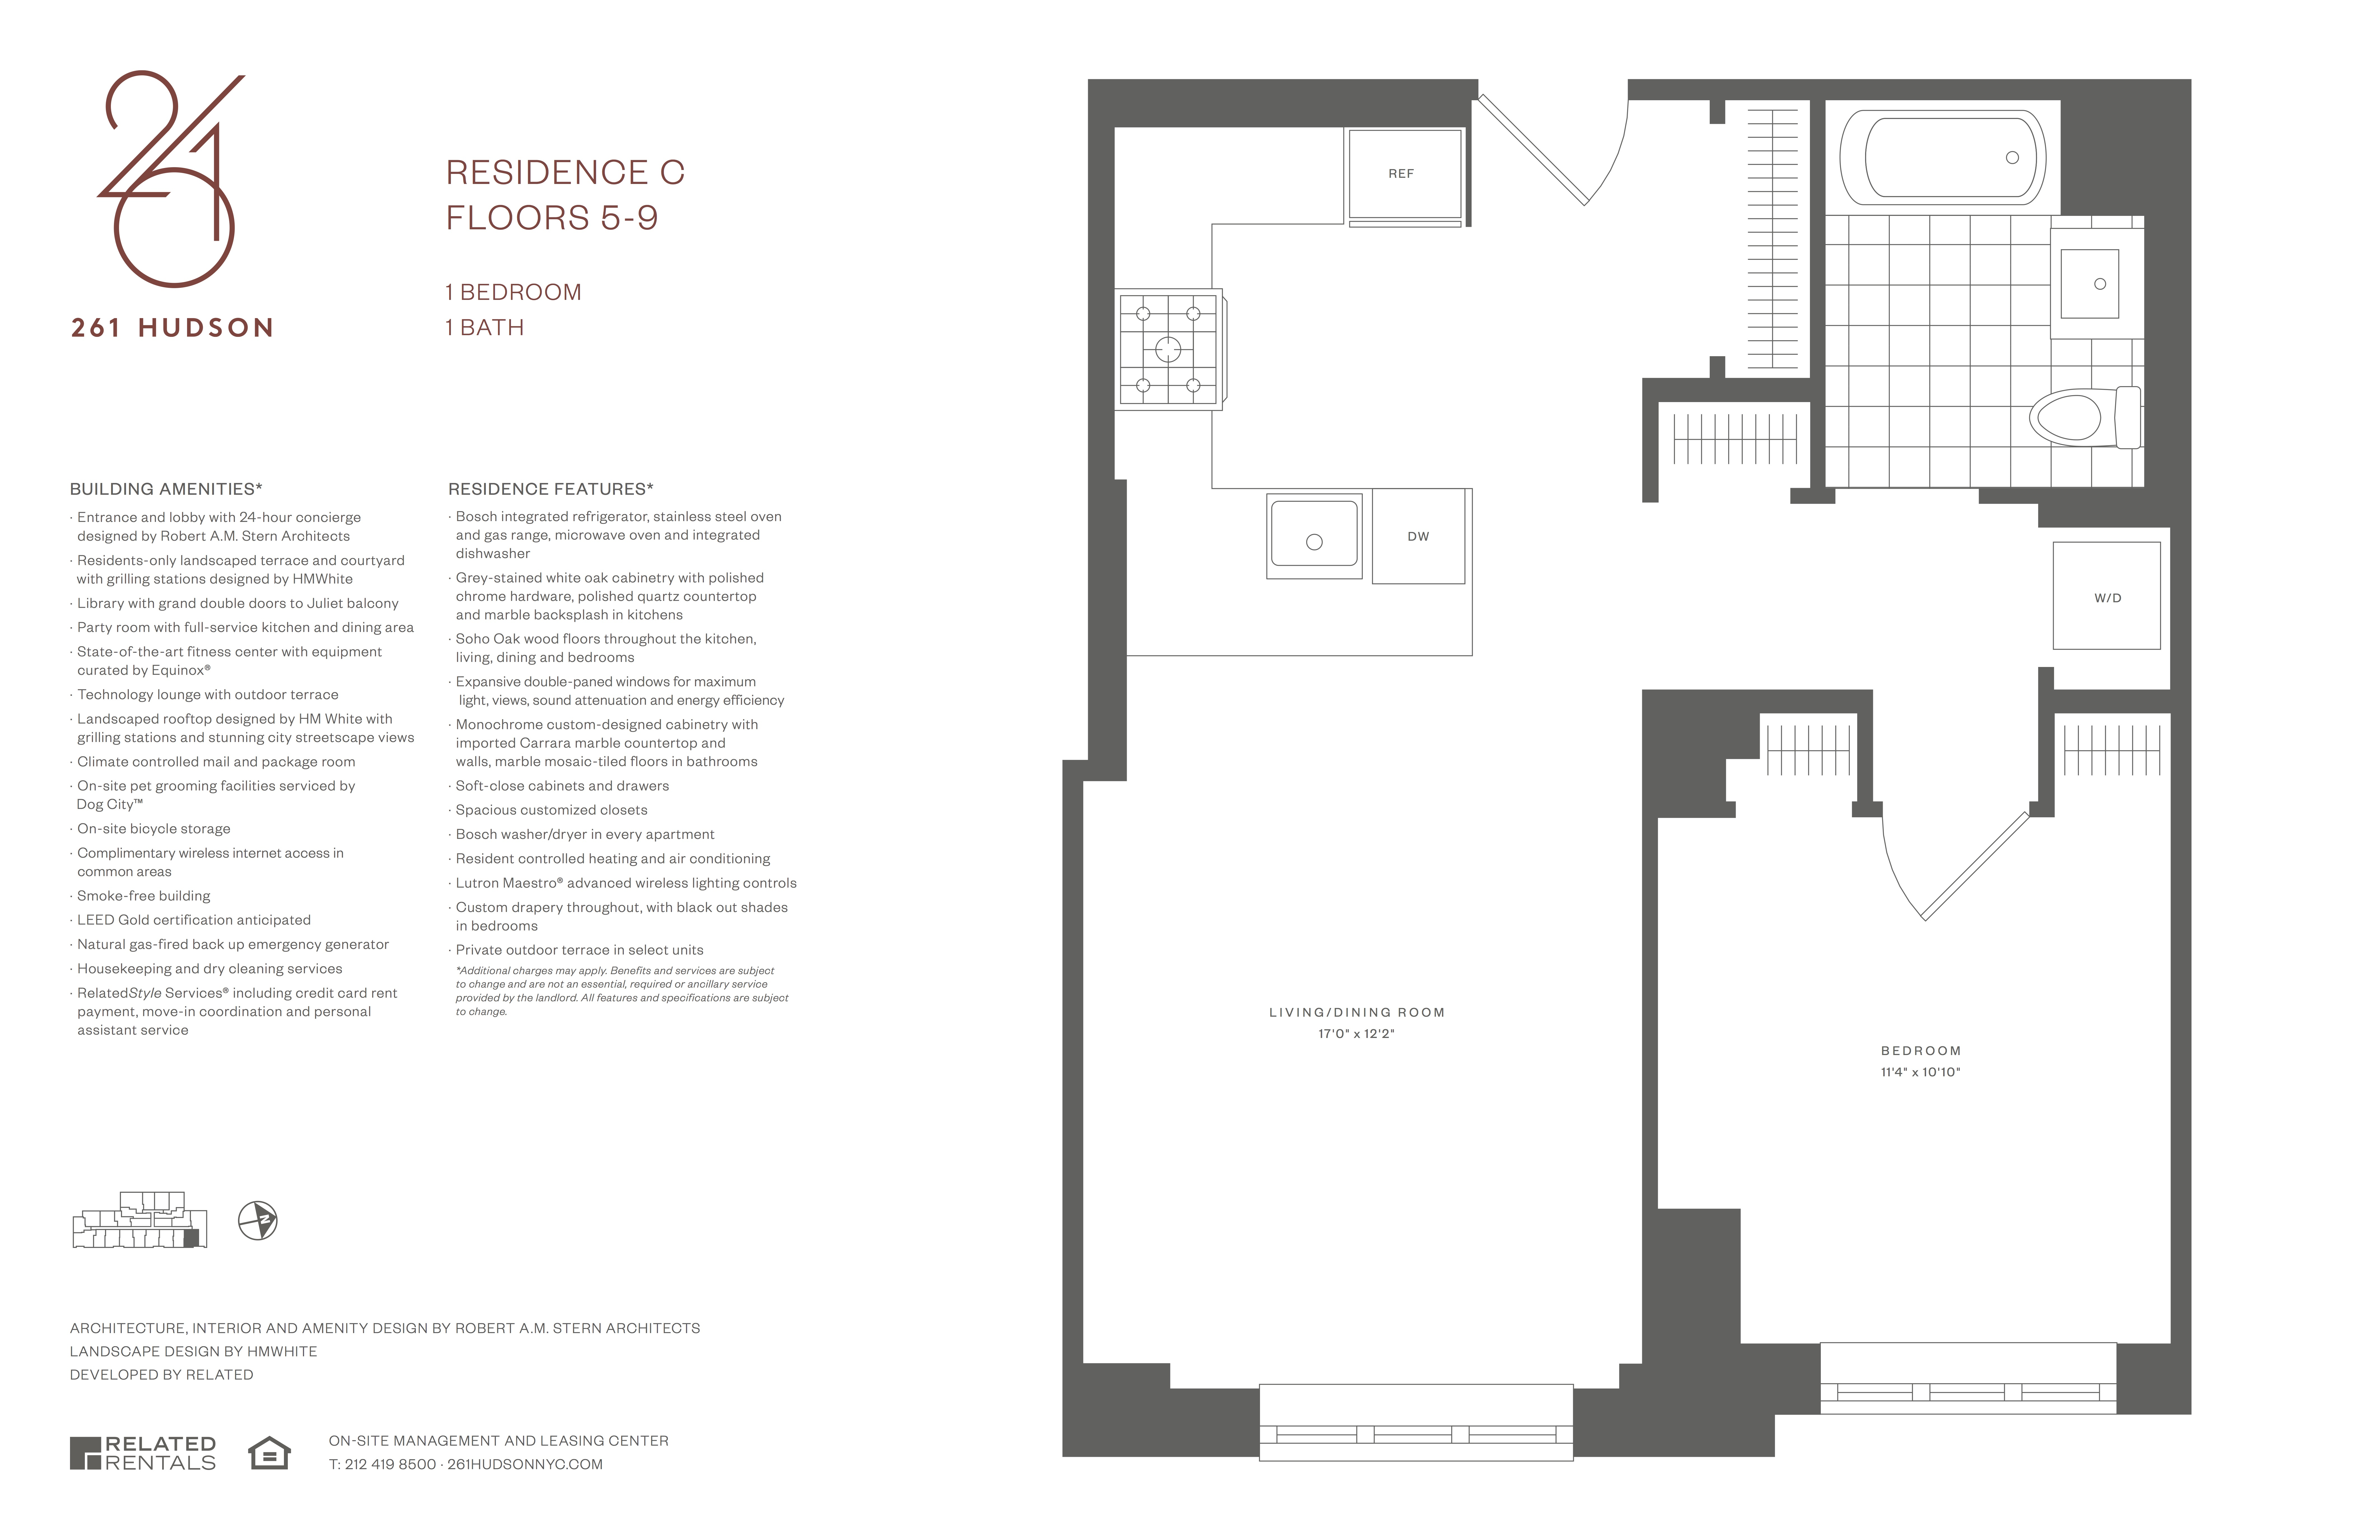 100 Do Ground Lines Go In A Floor Plan What U0027s